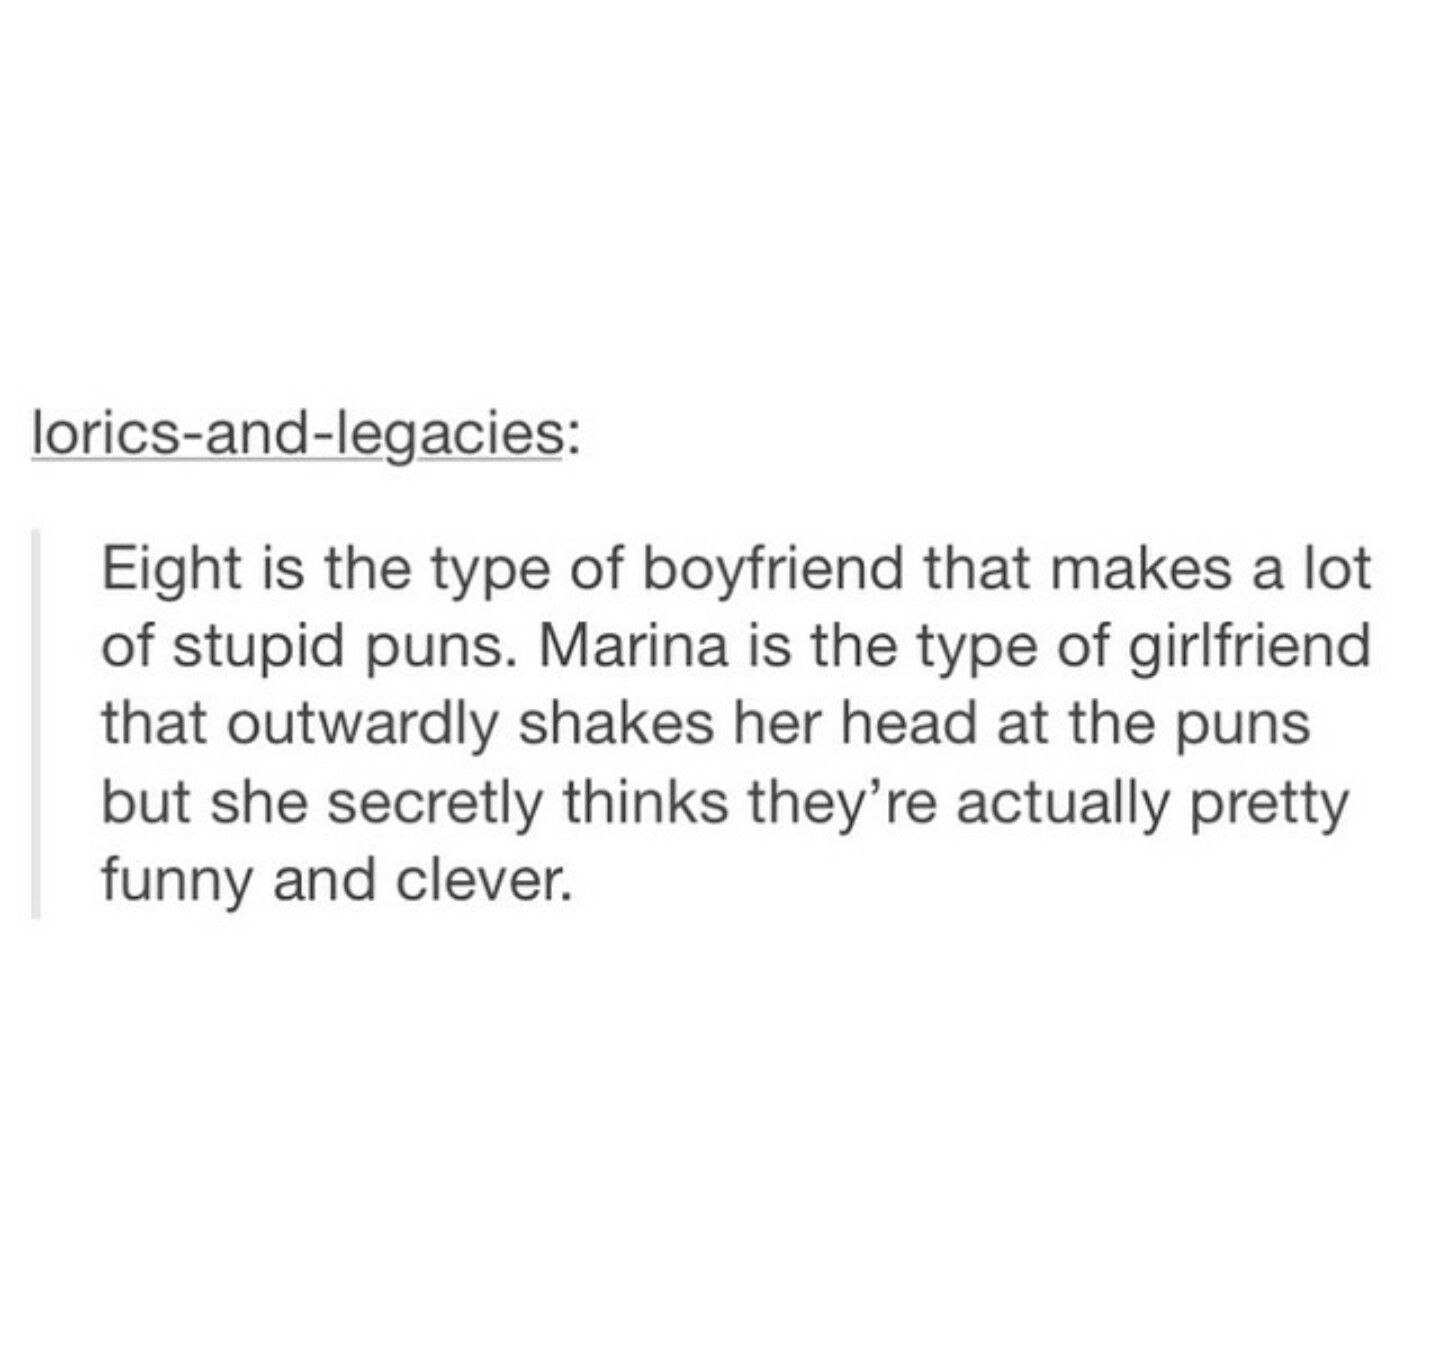 marina is me when dealing with puns | For Lorics Only